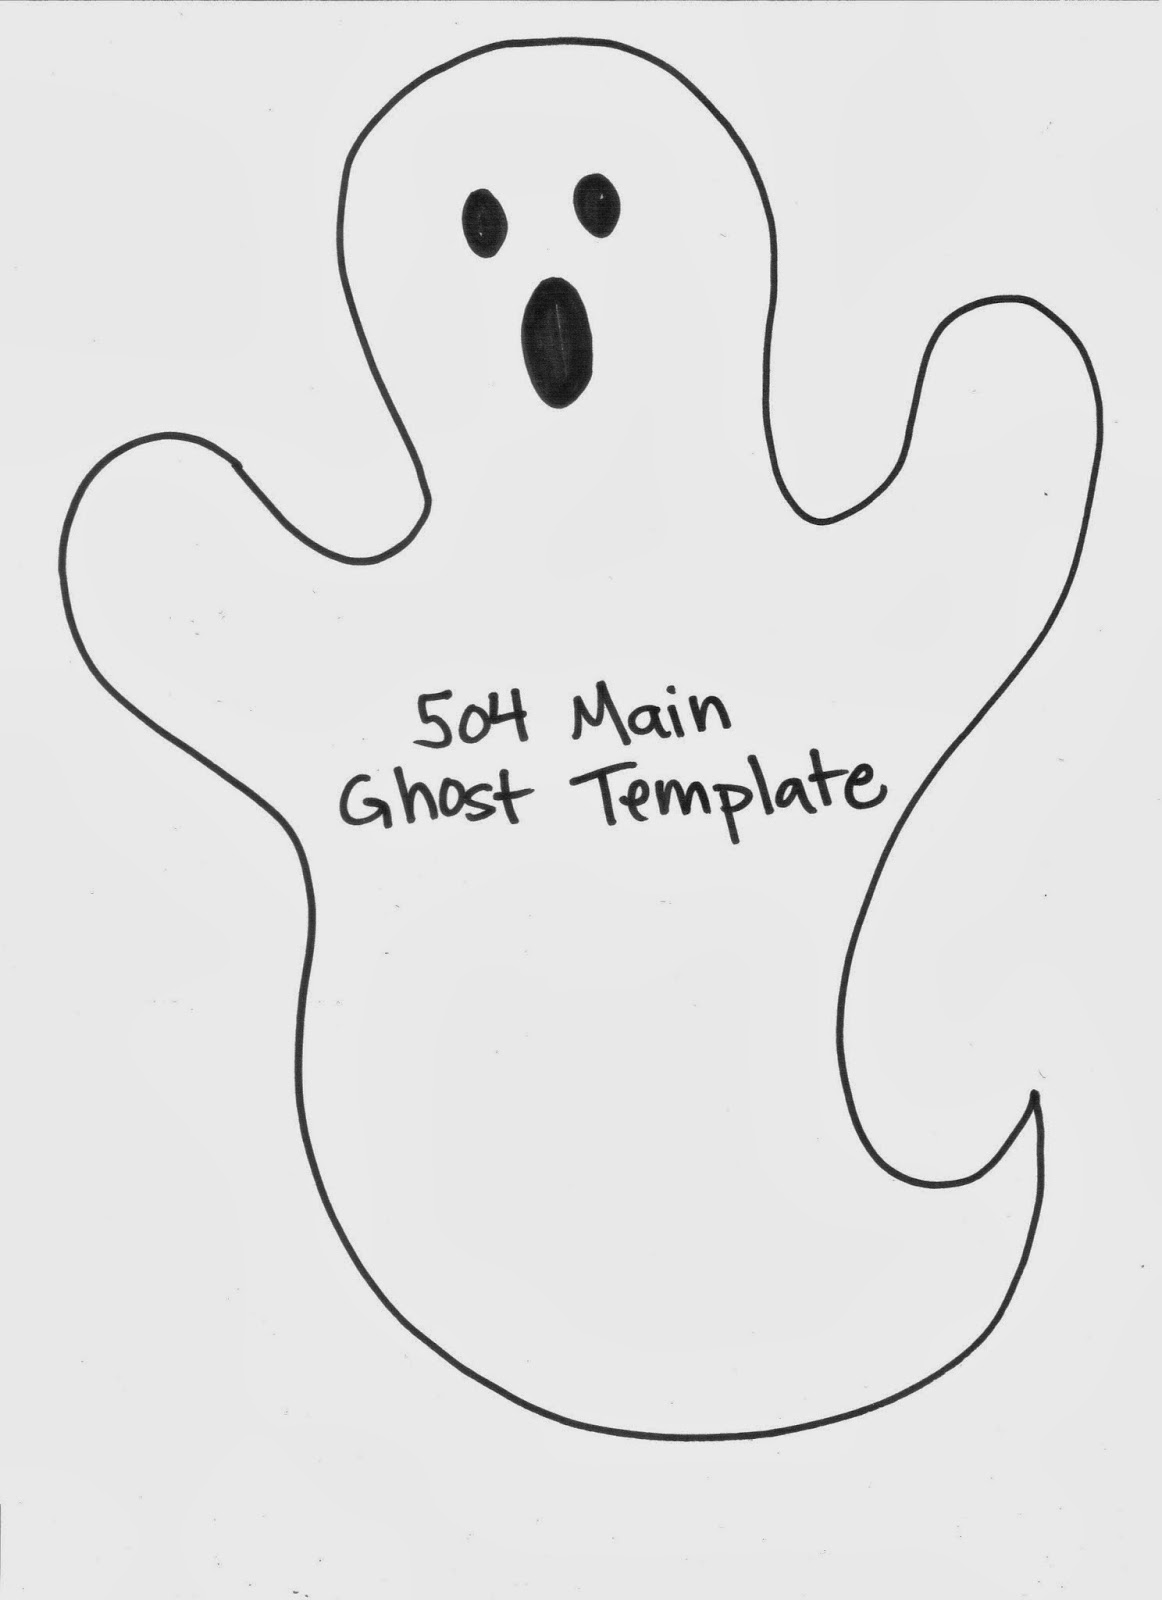 Ghost Template | 504 Main By Holly Lefevre How To Make A Super Simple Ghost